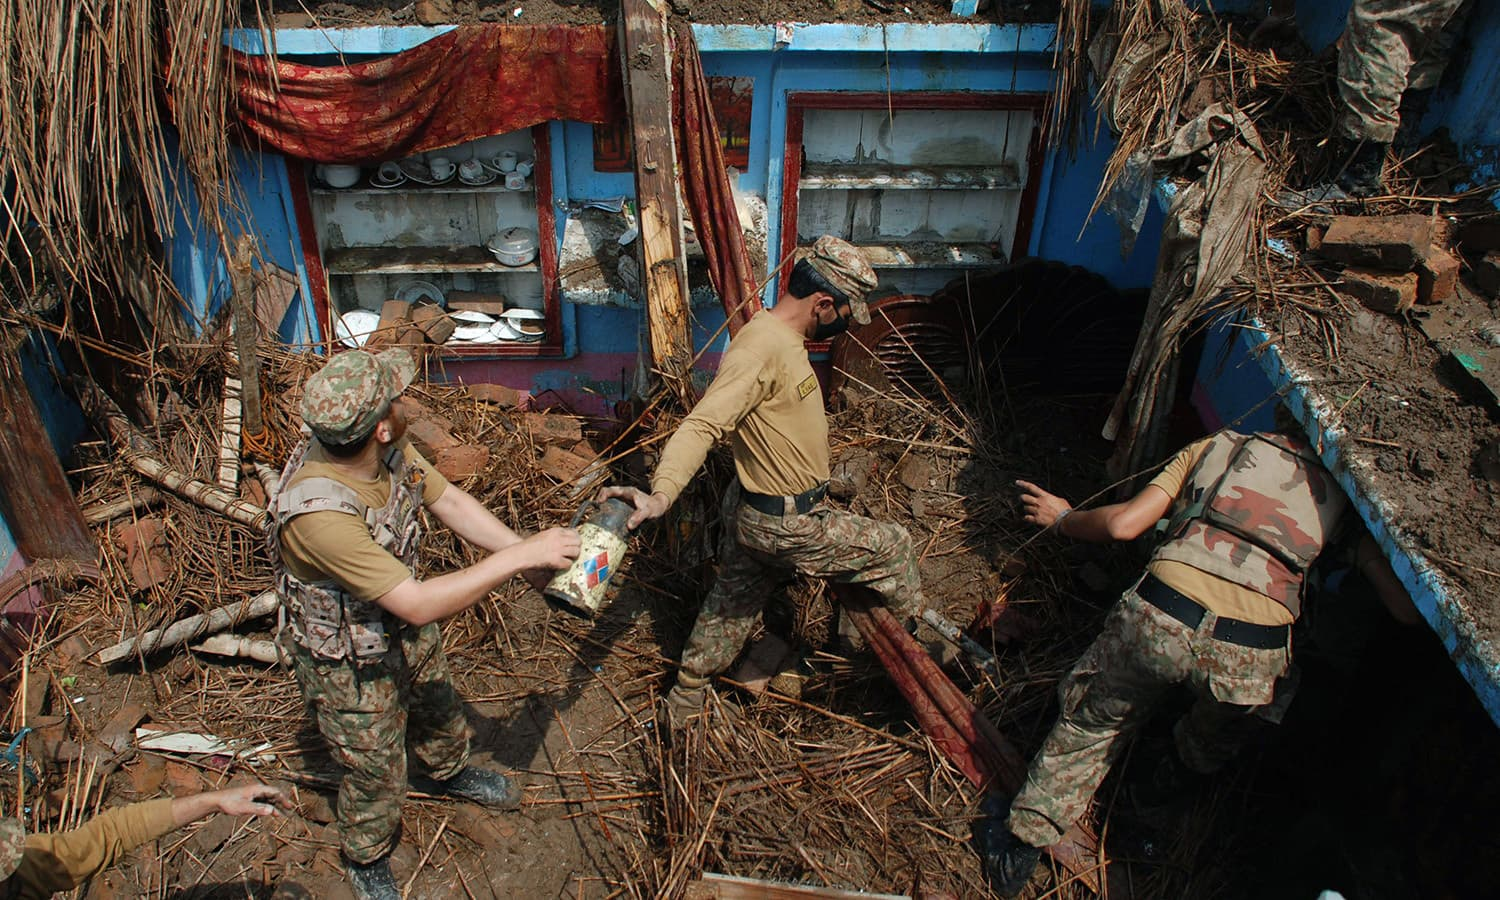 Soldiers remove belongings from a home after it was damaged in heavy rain and winds in Peshawar. — AFP